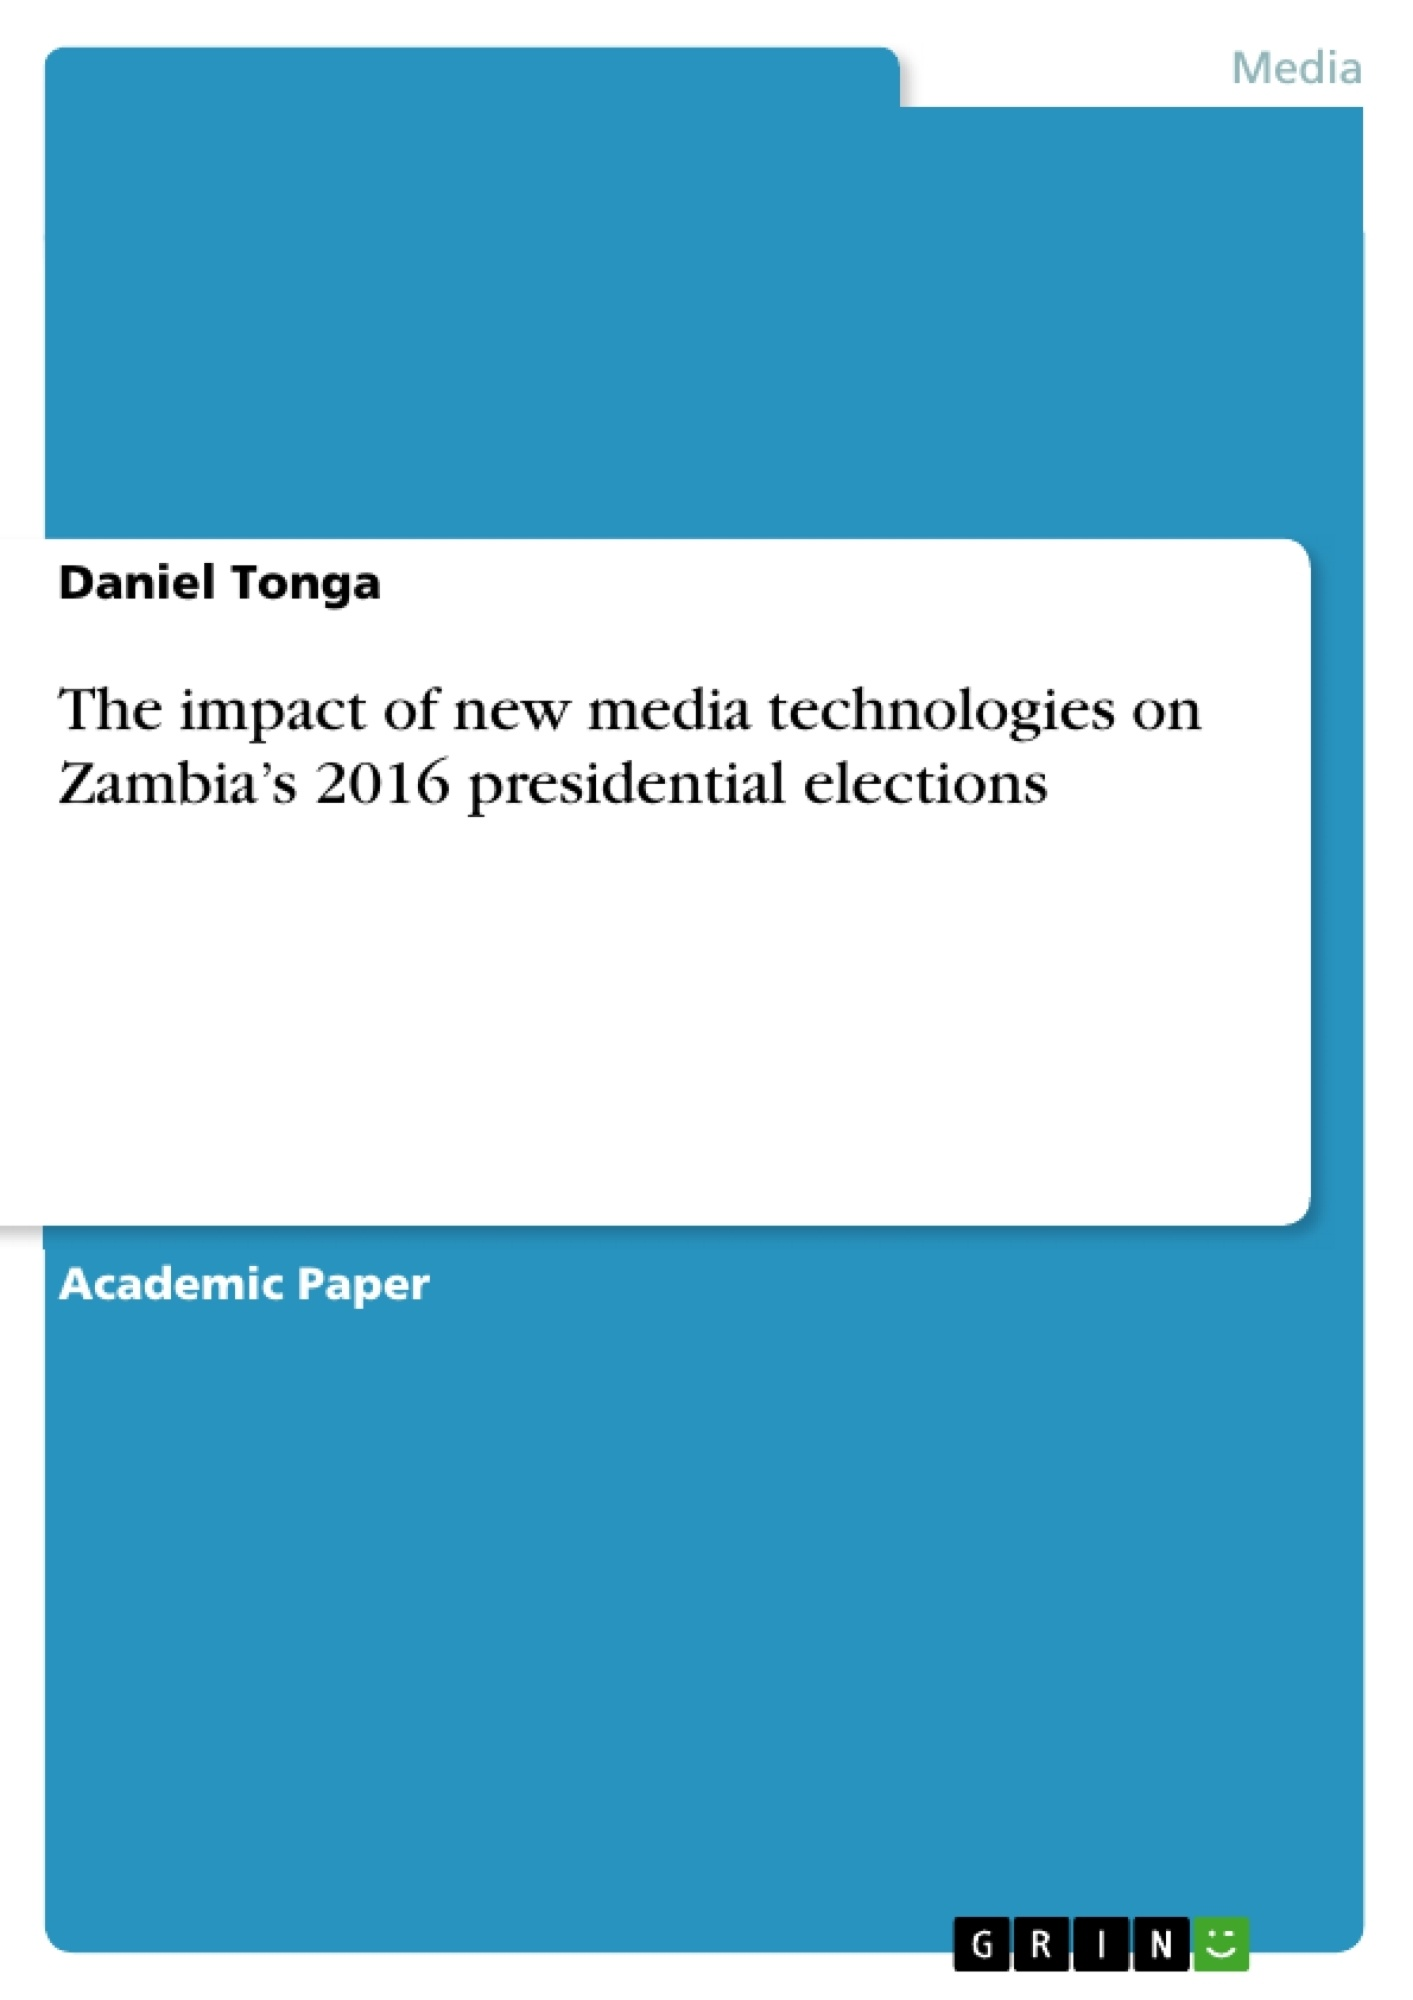 Title: The impact of new media technologies on Zambia's 2016 presidential elections